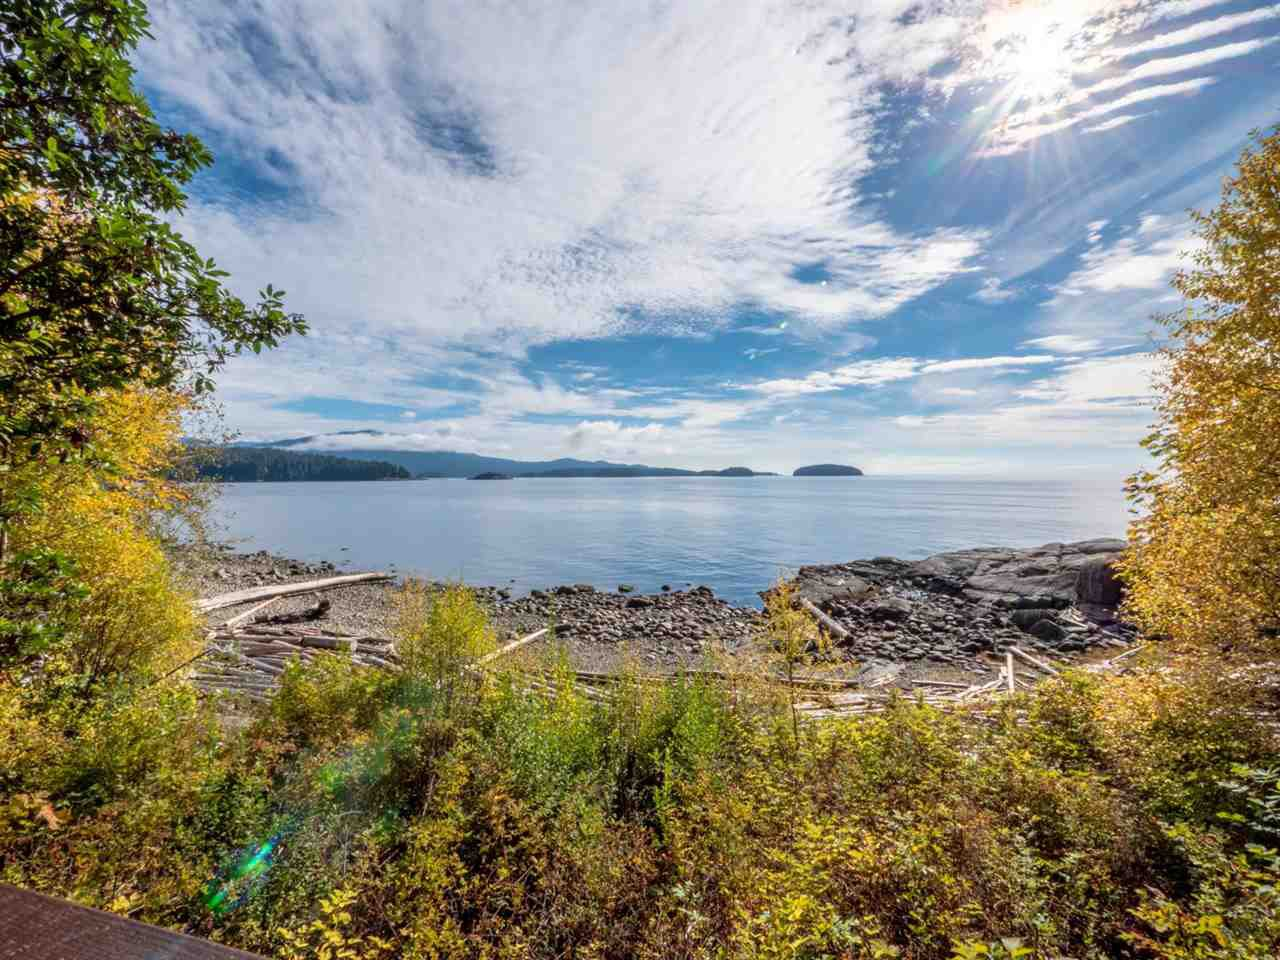 Photo 8: Photos: 877 GOWER POINT Road in Gibsons: Gibsons & Area House for sale (Sunshine Coast)  : MLS®# R2419918